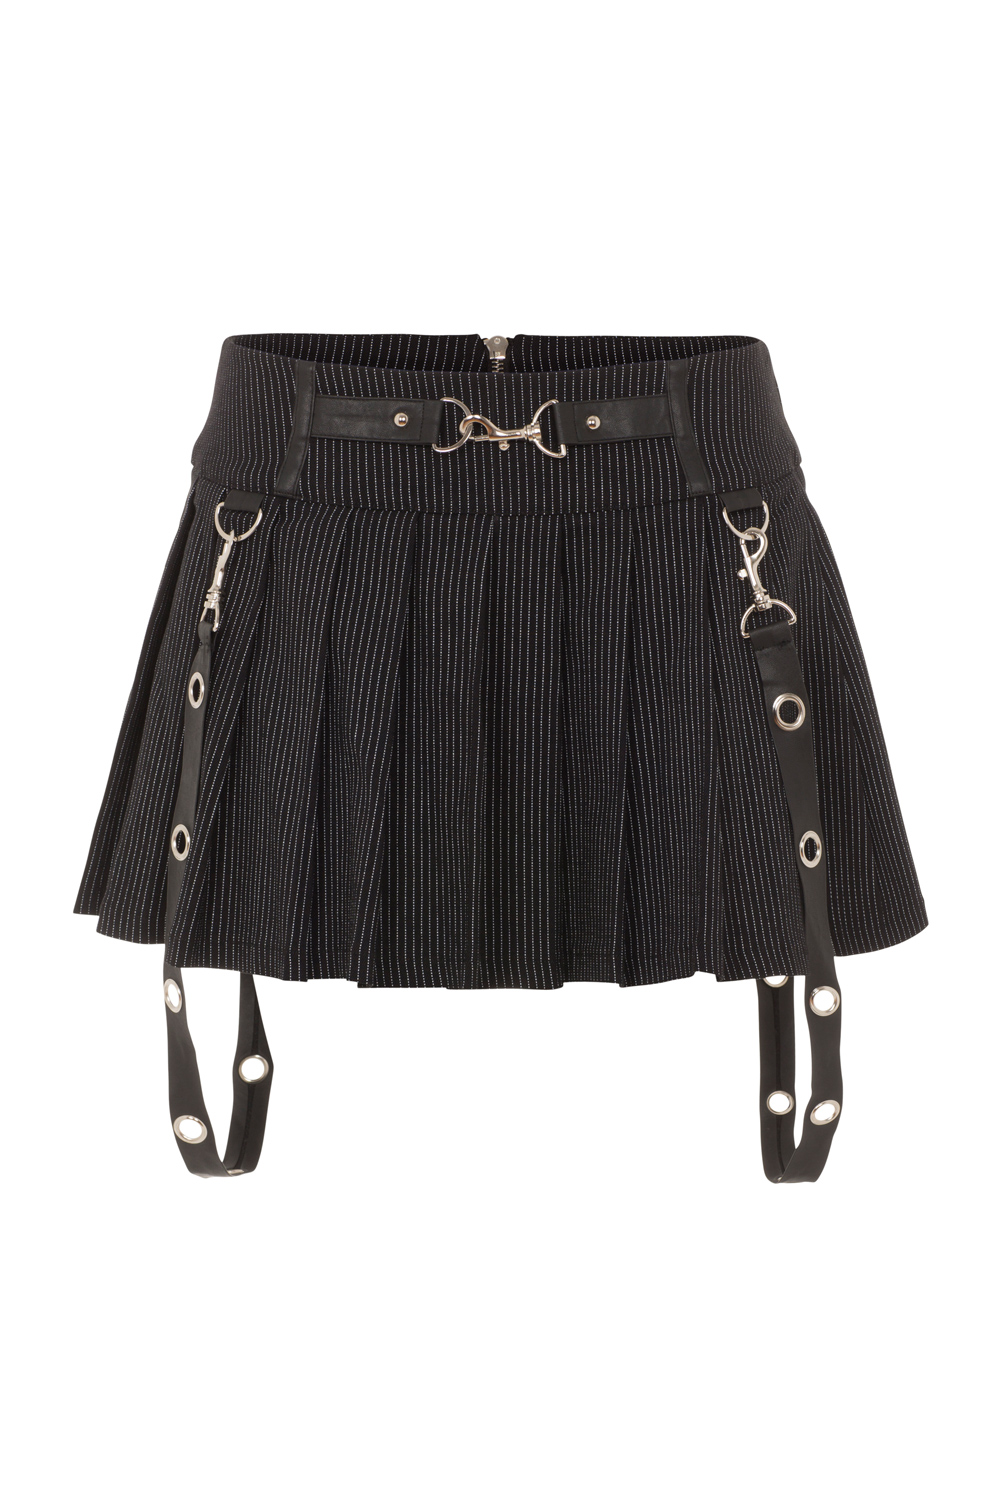 Insanity Plea Pinstripe Pleated Skirt